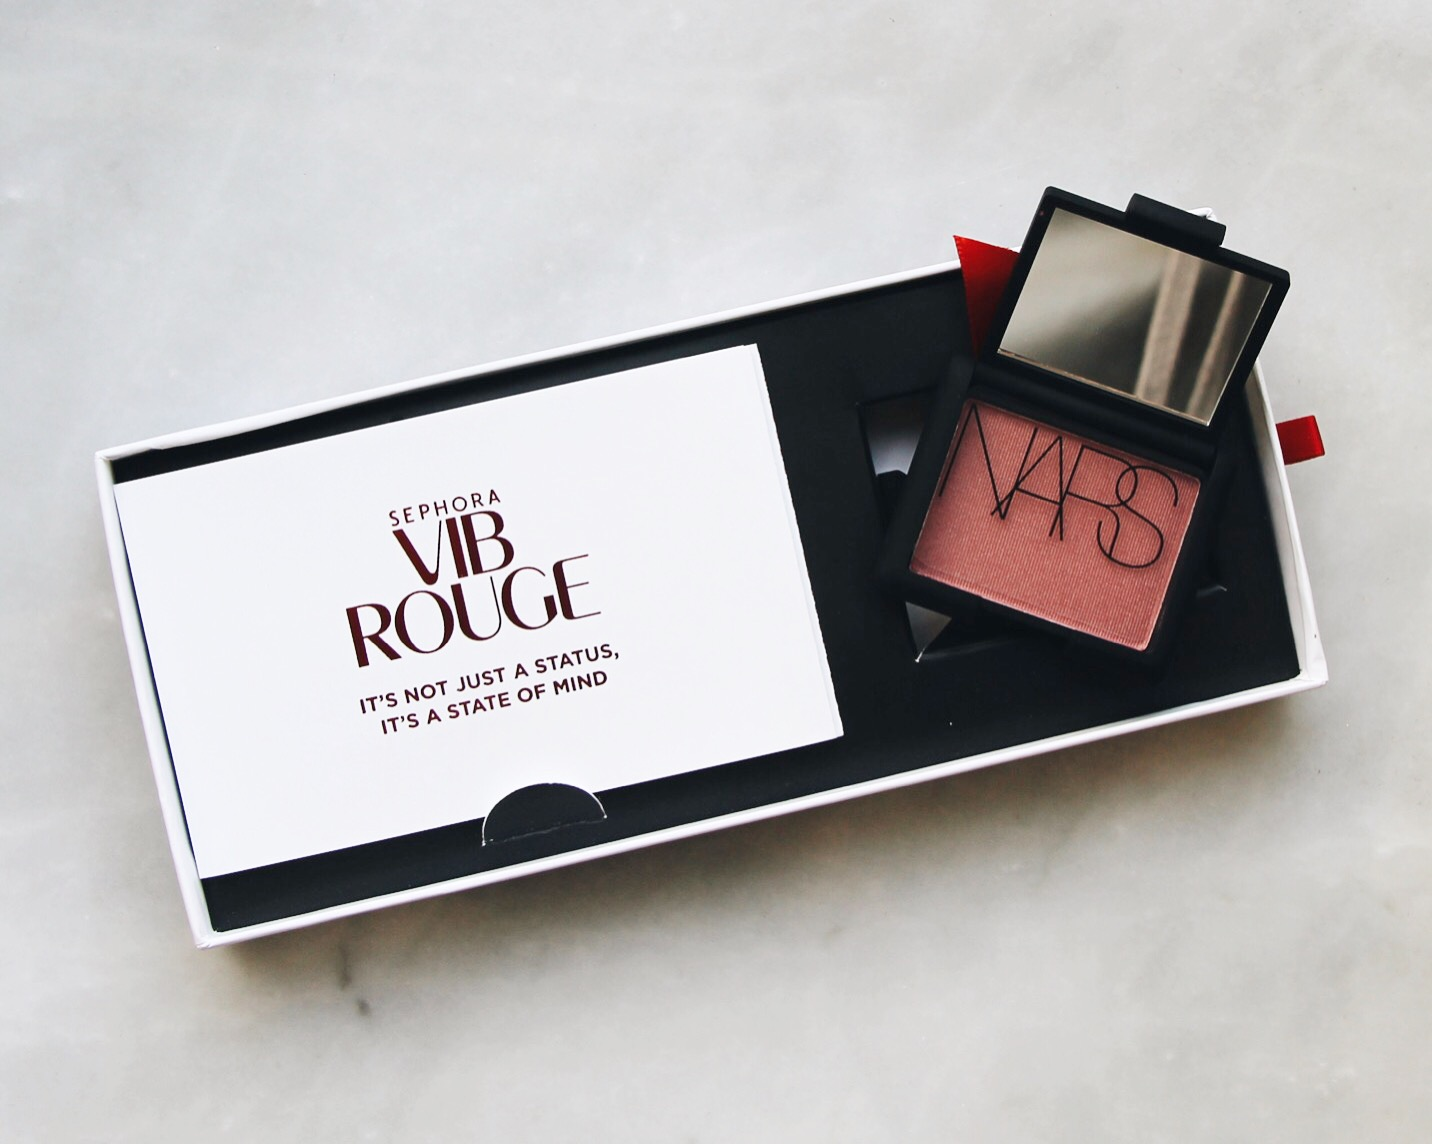 Sephora VIB Rouge, VIB, VIB Rouge, VIB Rouge Program, Sephora Loyalty Program, VIB Rouge Review, VIB Rouge Perks, VIB Rouge Freebies, Free Sephora, Free Beauty Products